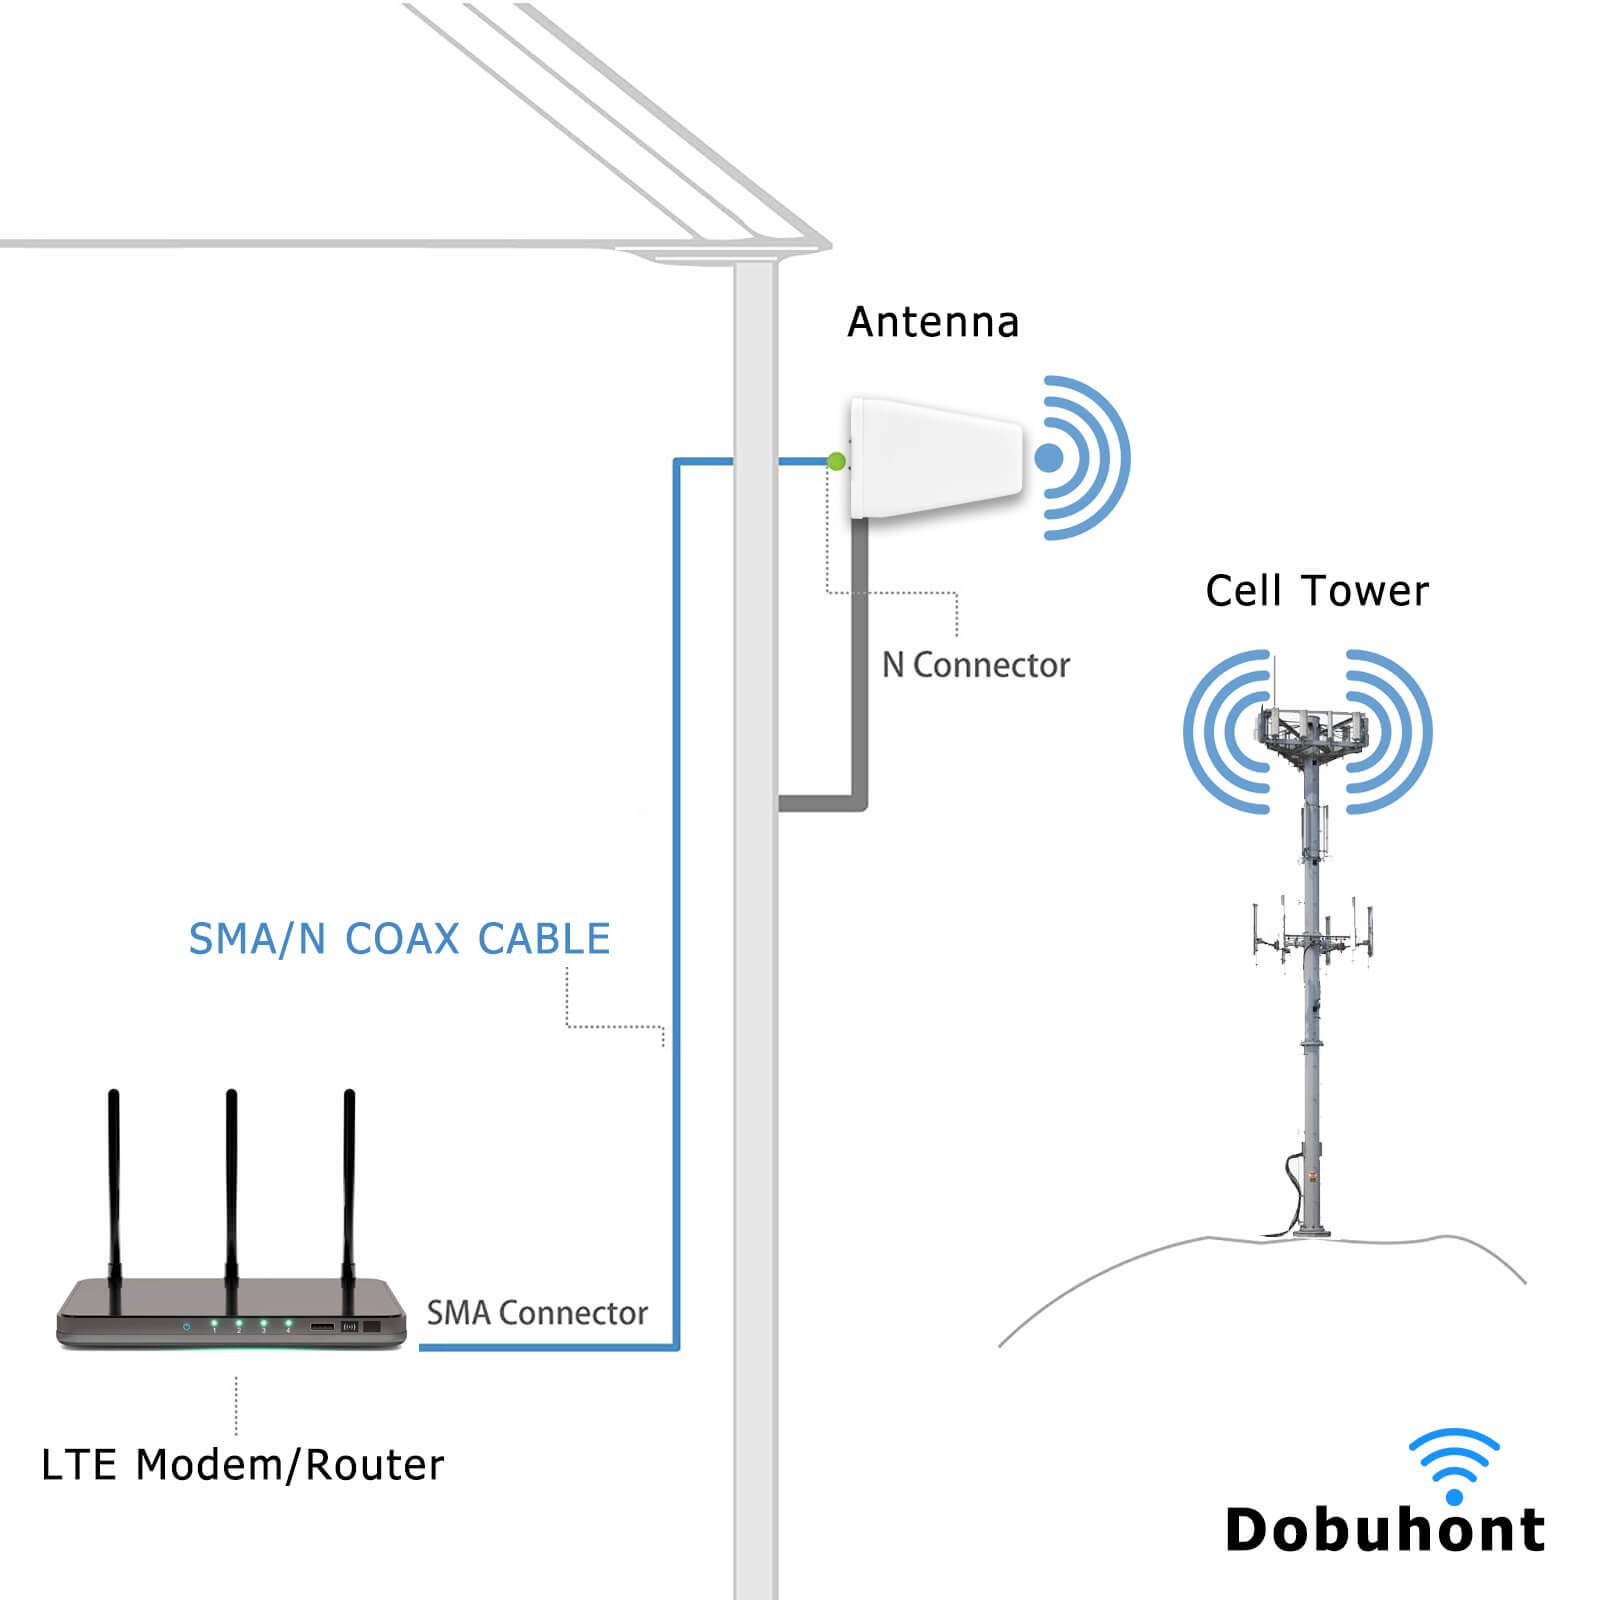 4G LTE Antenna with 11dBi High Gain and Weatherproof Housing Wideband Outdoor Fixed Mount Directional Yagi Antenna 698MHz-2700MHz